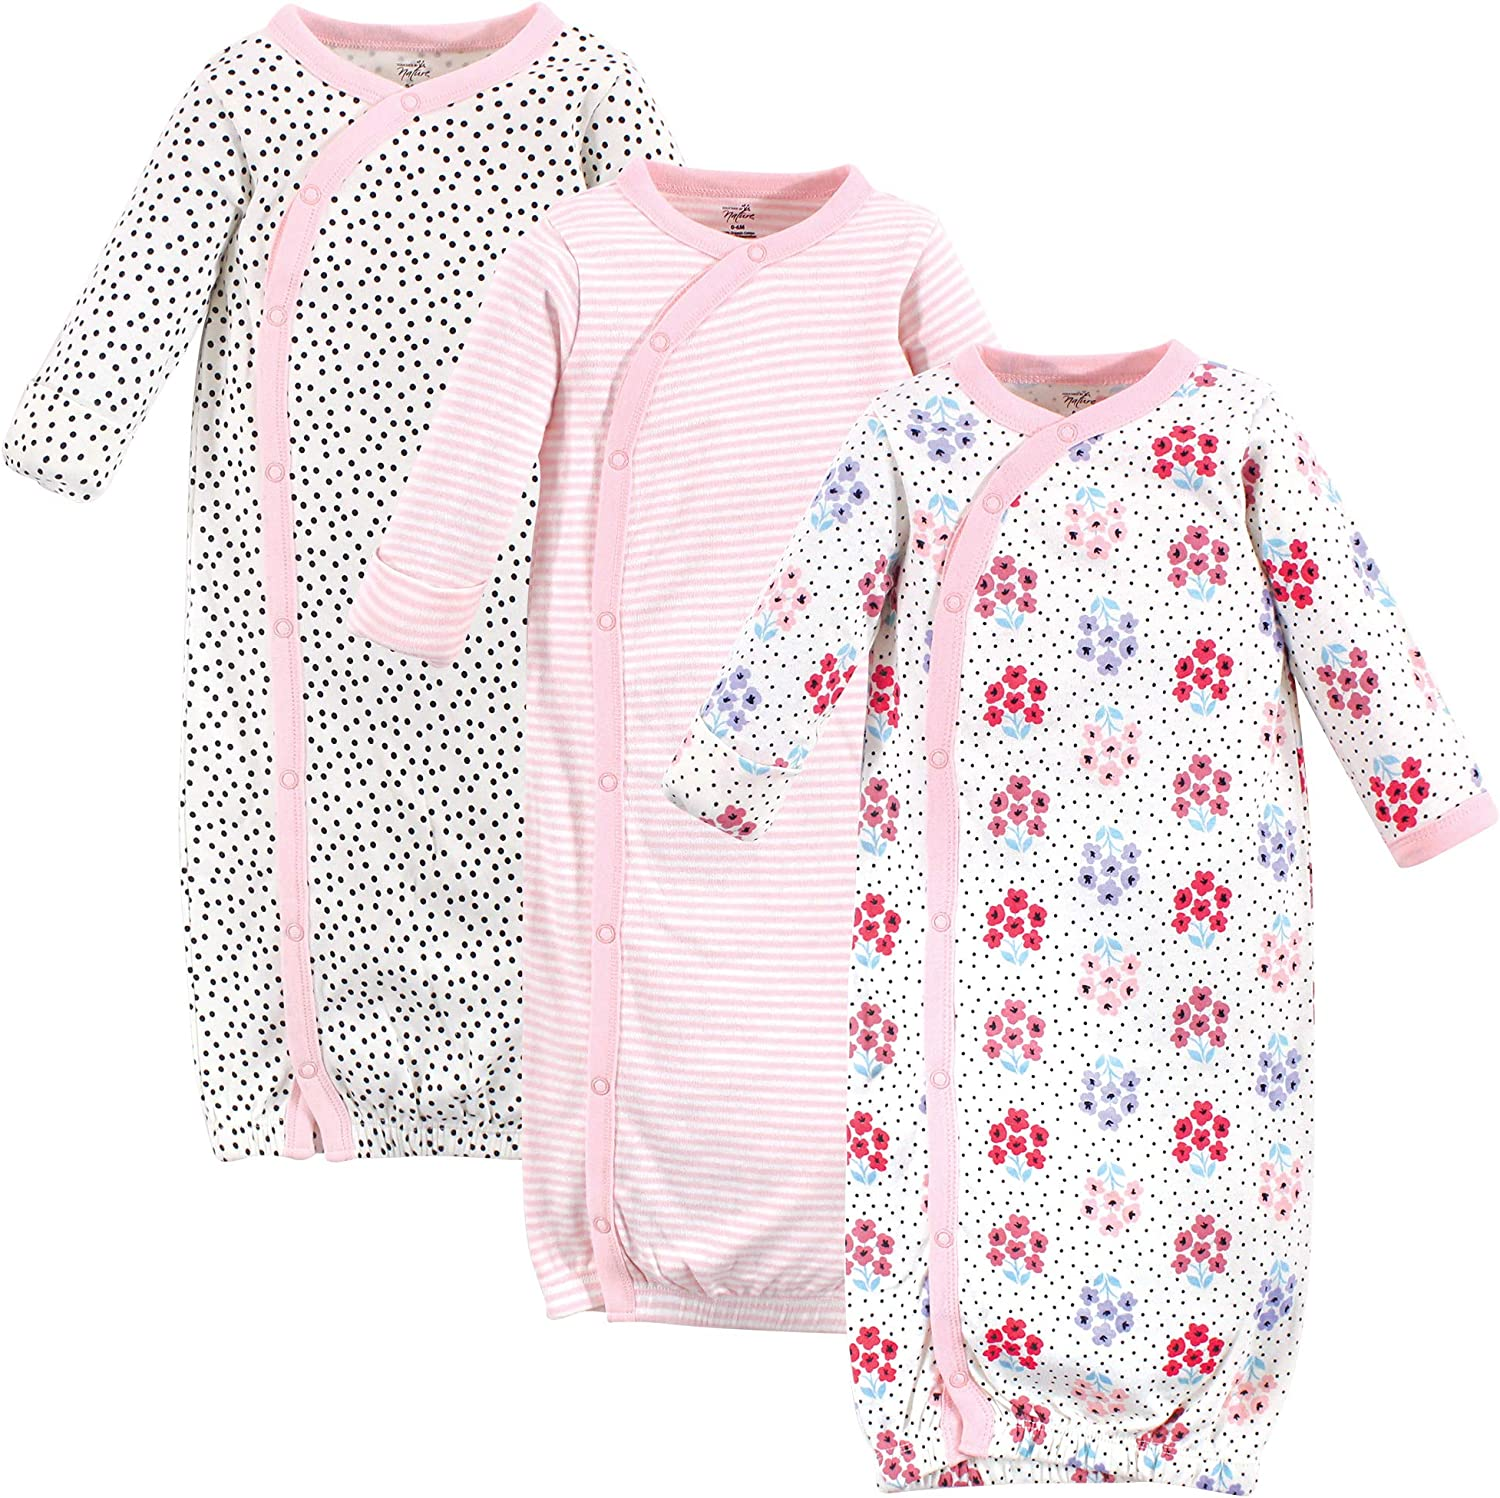 Touched by Nature Baby Girls Organic Cotton Kimono Gowns